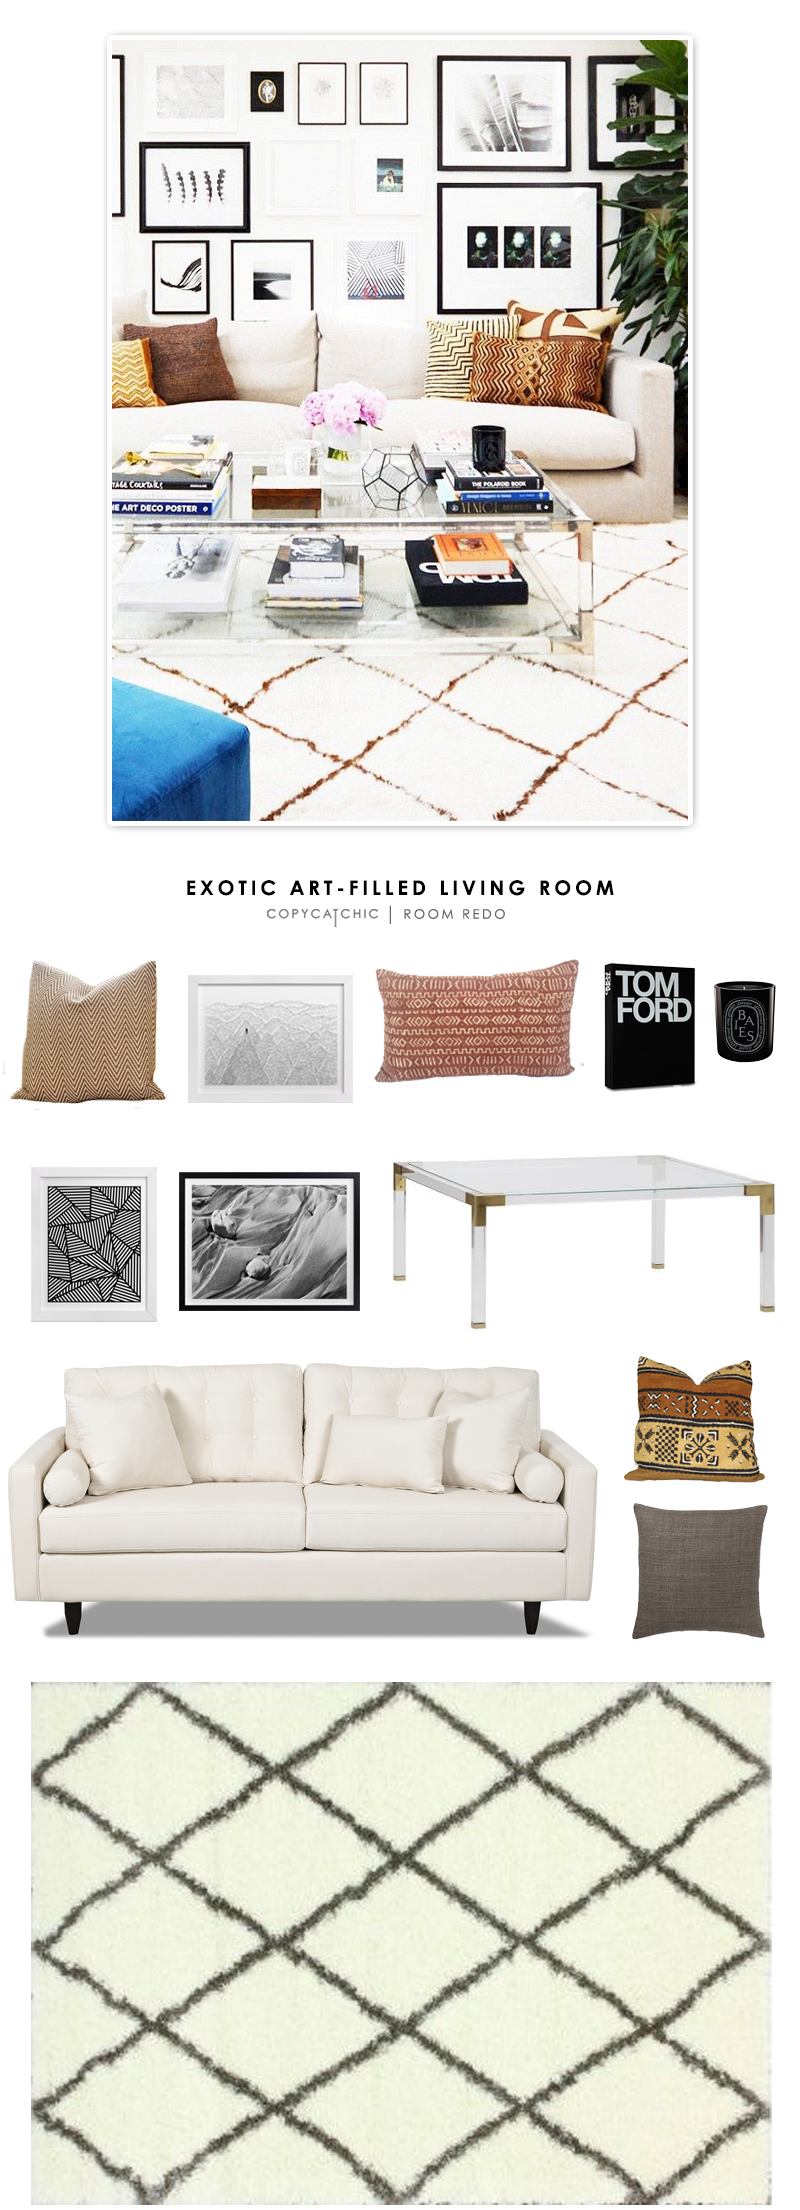 An Exotic Art-Filled Living Room featured on Design Sponge and recreated for less by Copy Cat Chic